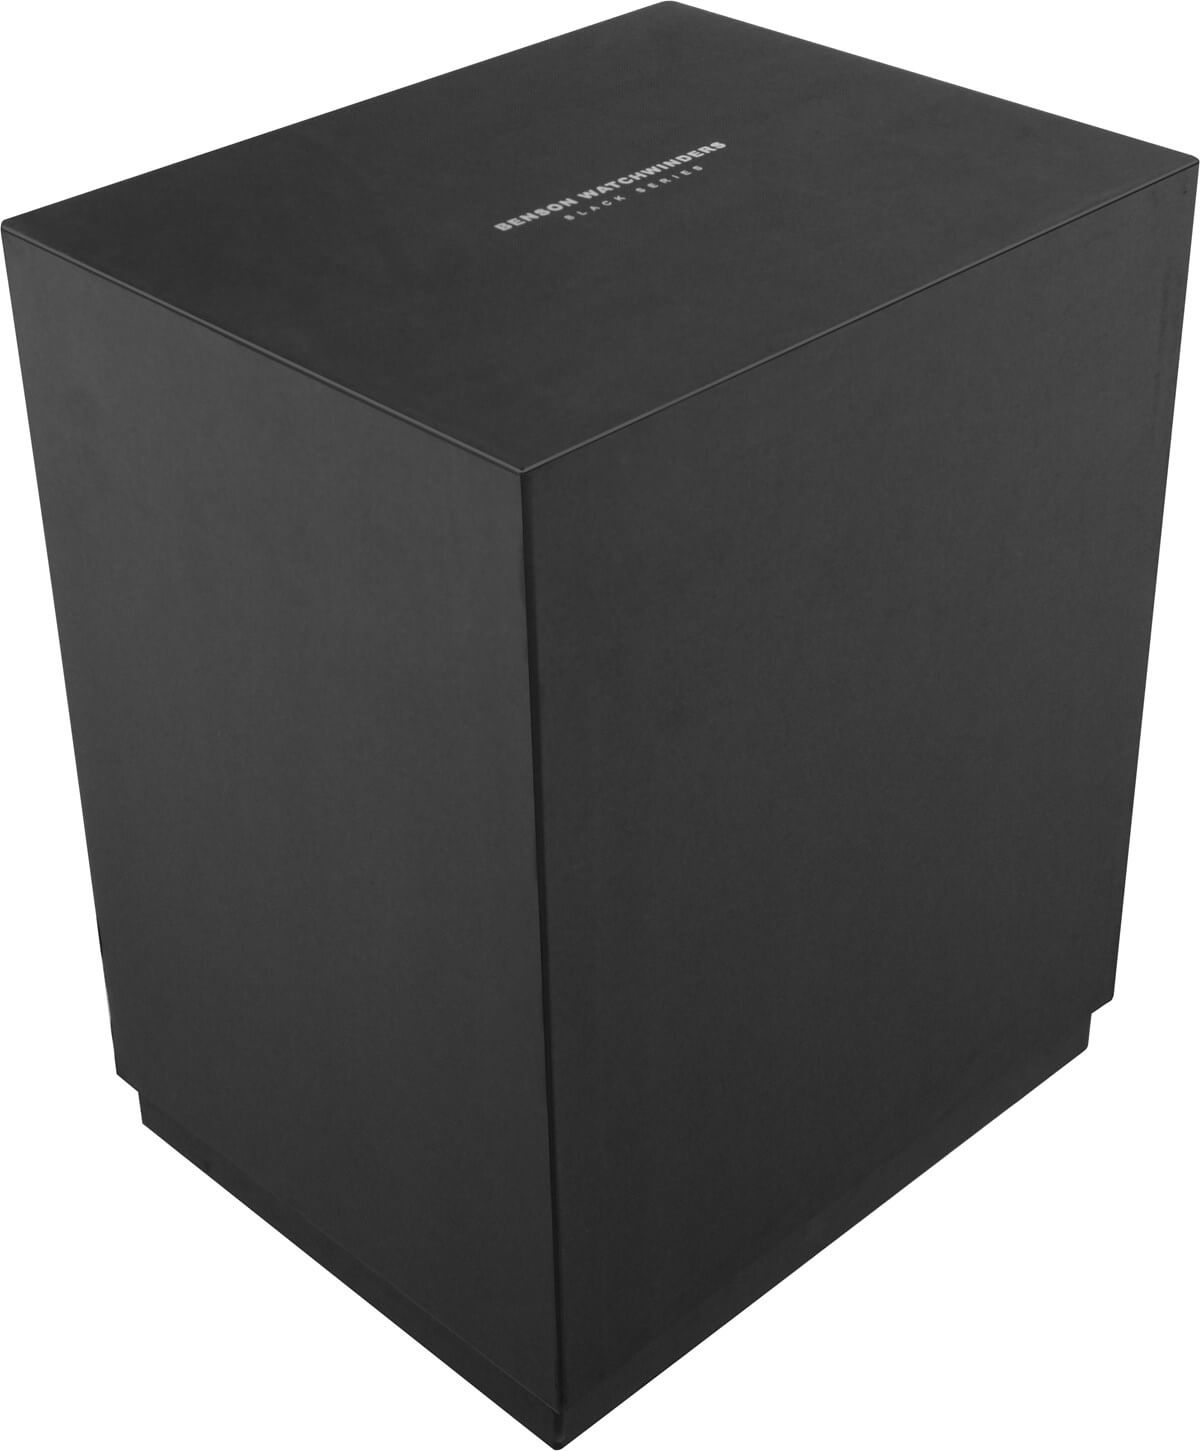 Benson Black Series 4.17.RD Limited Edition